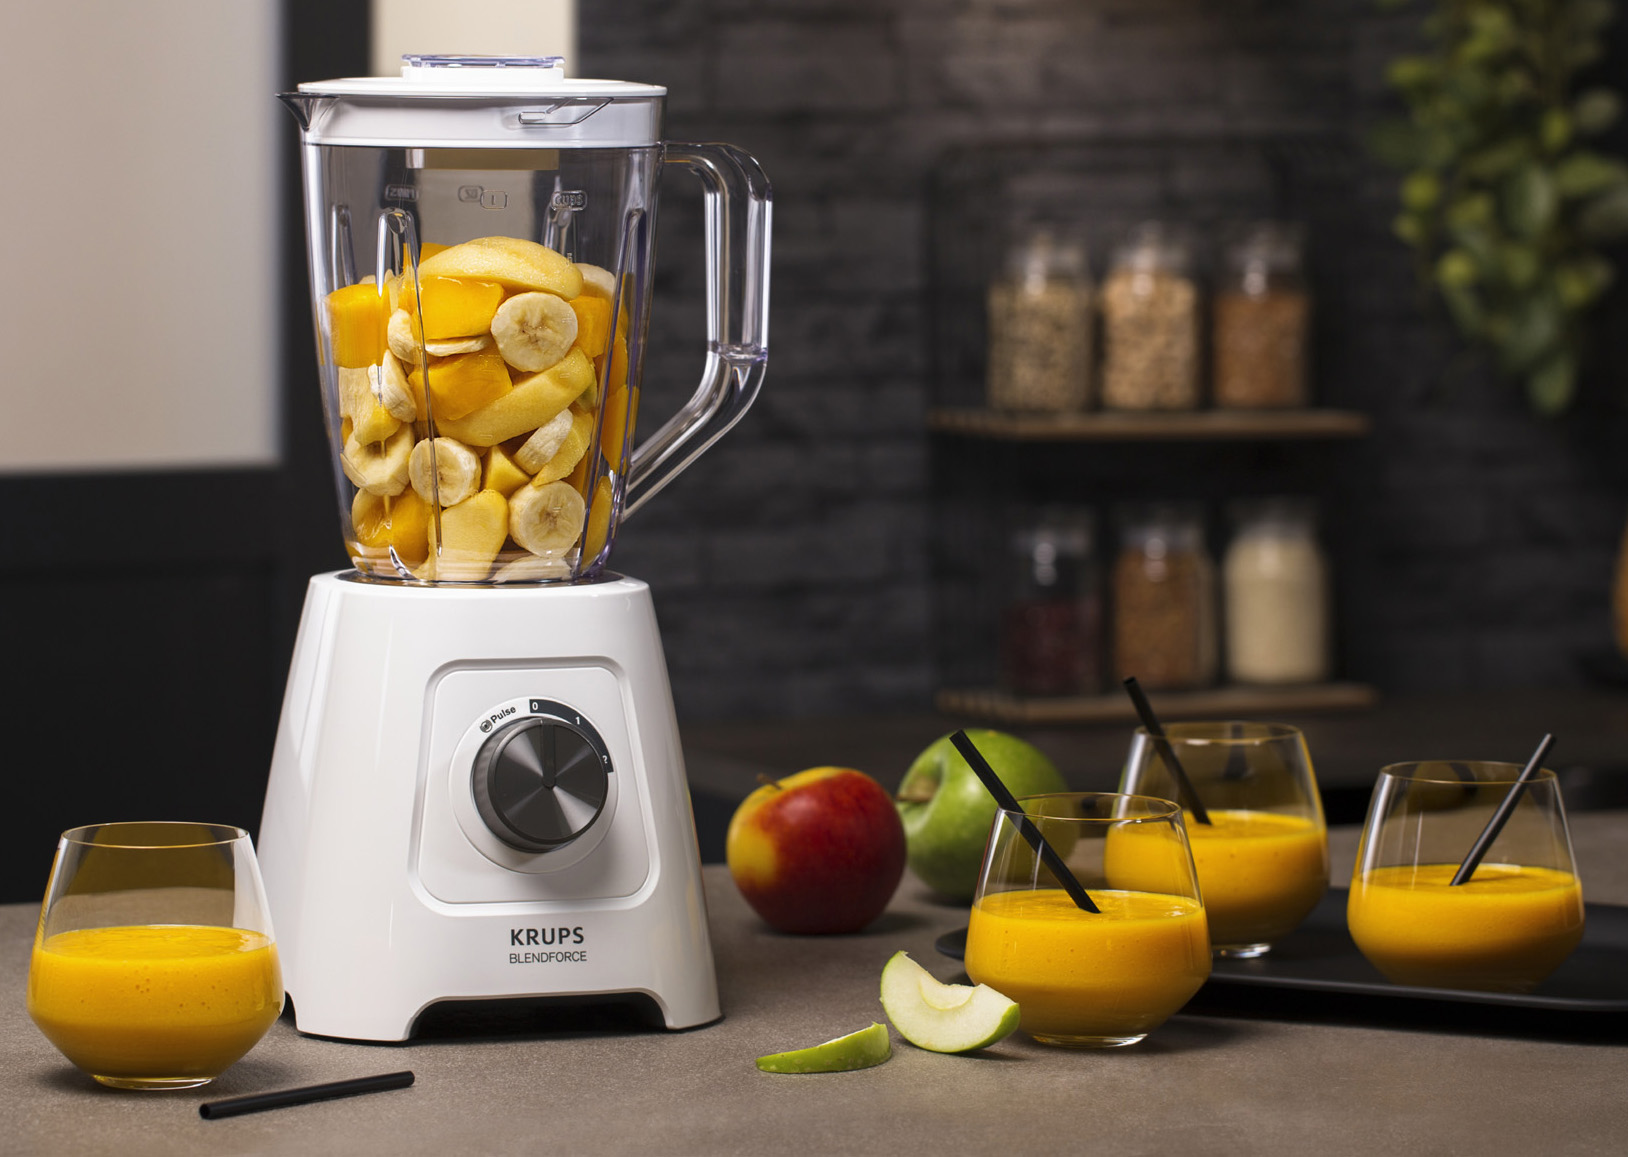 <h1>Krups Standmixer Blendforce</h1><h3 style='font-size: 20px; margin: 0px 0px 15px 0px;'> - Smart-Lock-System, Air Cooling</h3>